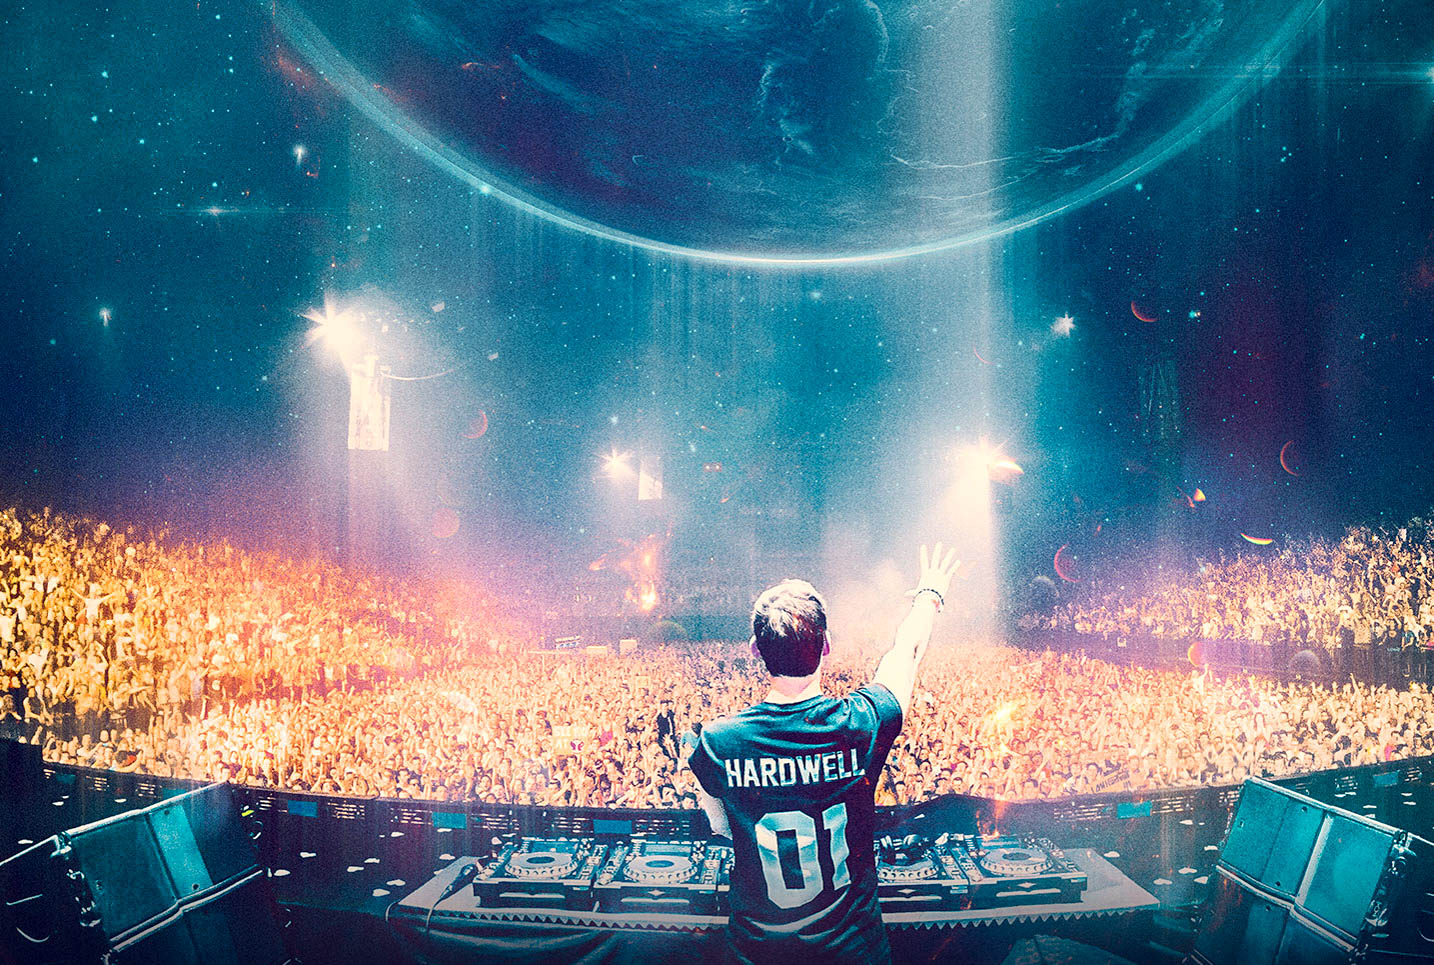 Best Hd Wallpapers: Hardwell Best Selected HD Wallpapers, Backgrounds In High